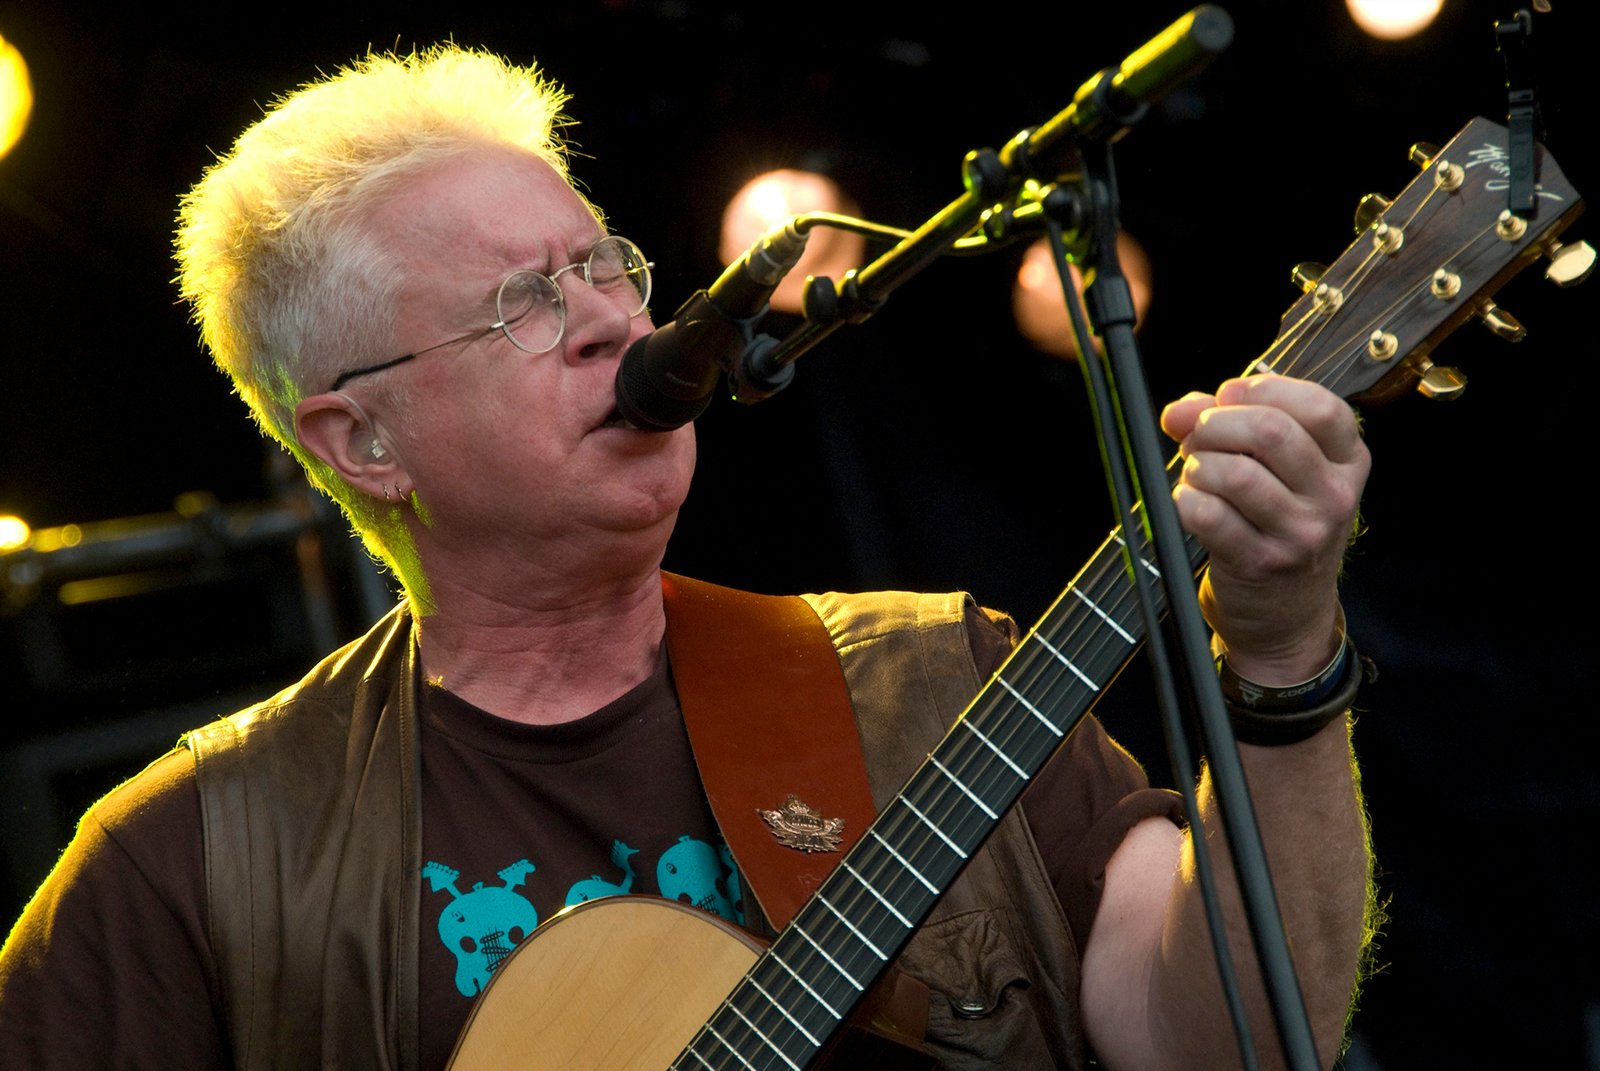 Bruce Cockburn performs at the Cambridge Folk Festival in July 2007. Photo by Bryan Ledgard/Wikimedia/Creative Commons